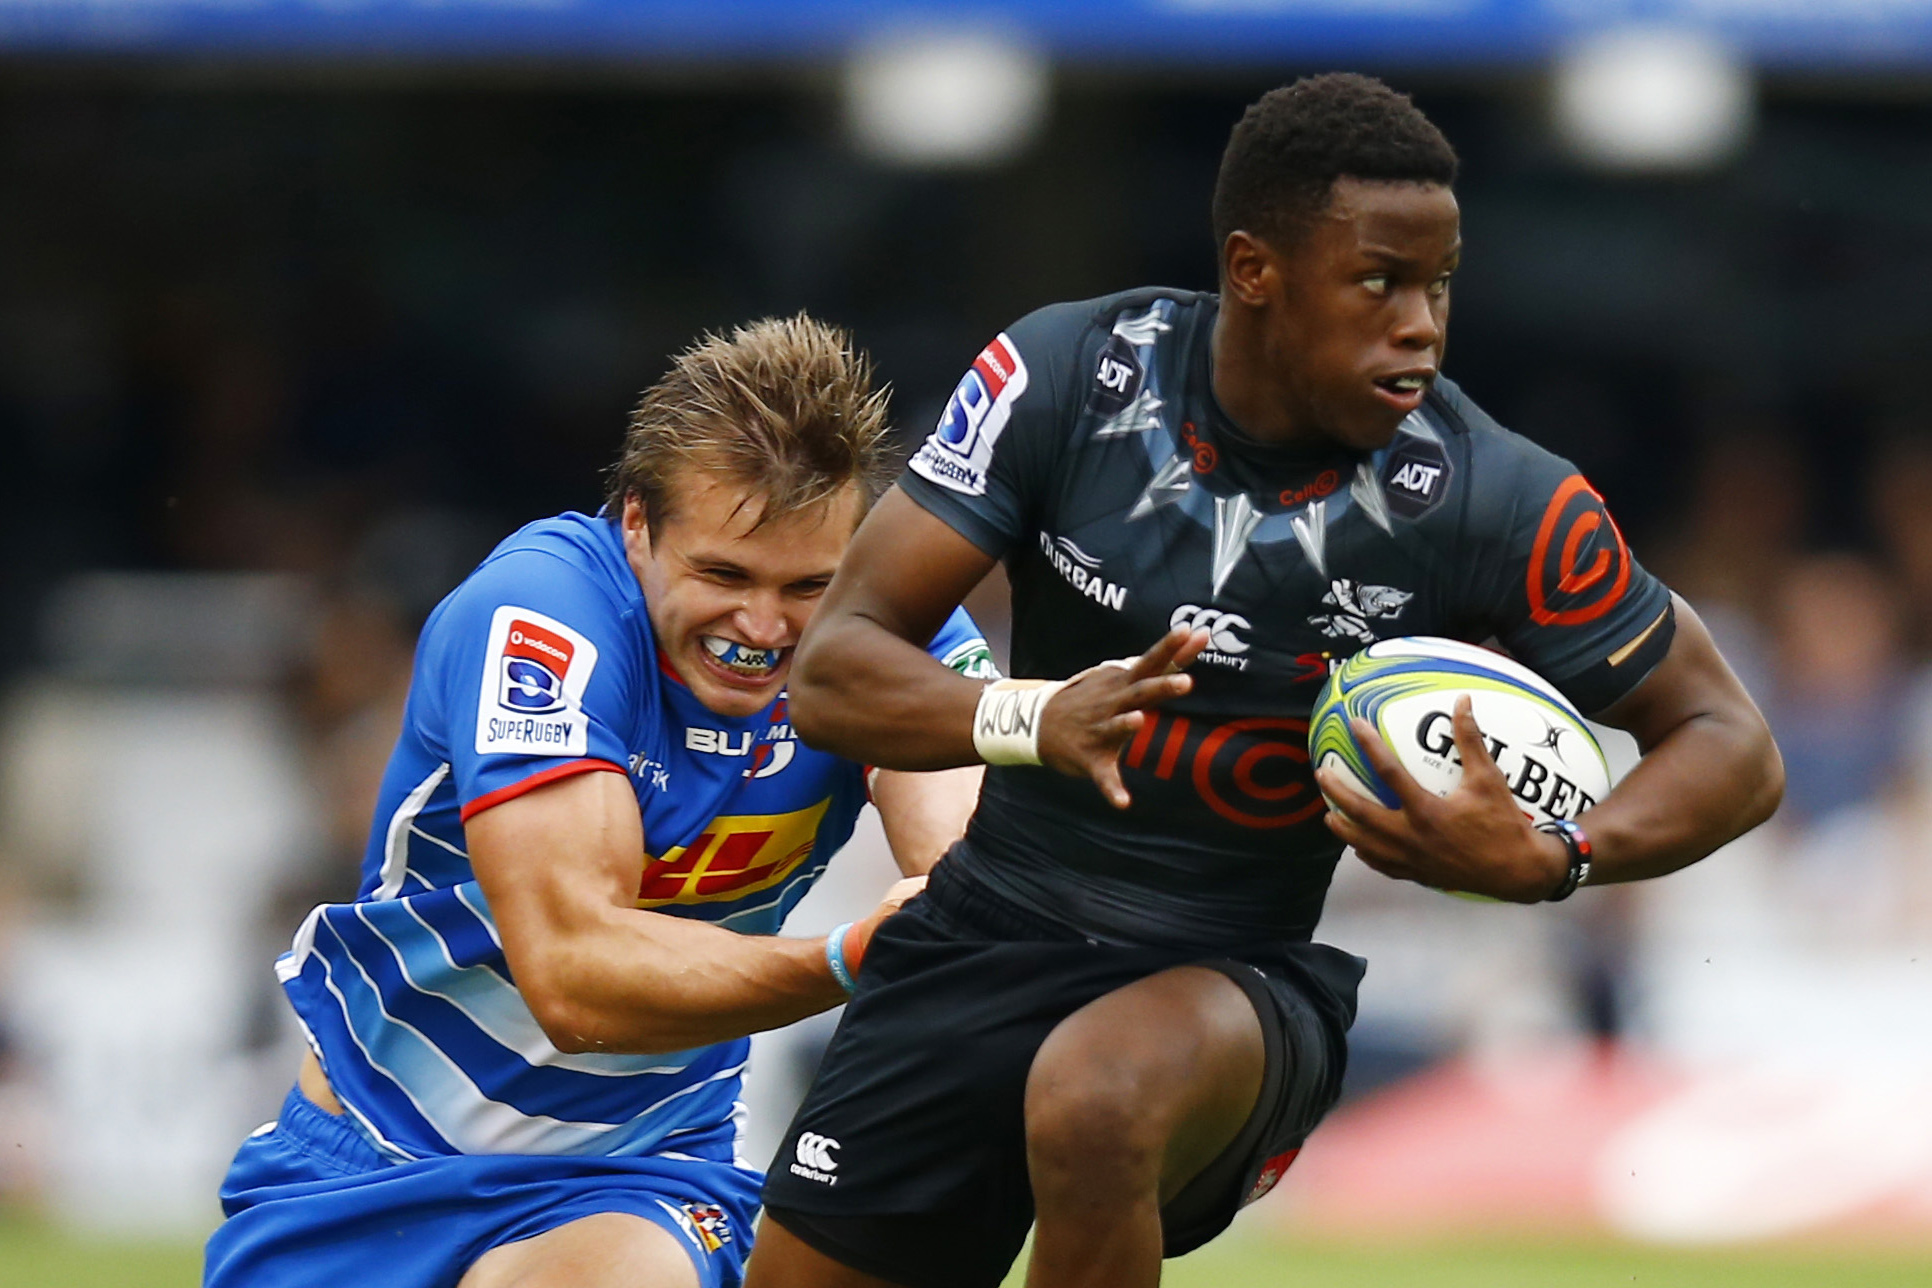 2 March 2019: (From left) Jean-Luc du Plessis of the Stormers coming in for the tackle on Aphelele Fassi of the Sharks during a Super Rugby match at Jonsson Kings Park in Durban. (Photograph by Steve Haag/Gallo Images)